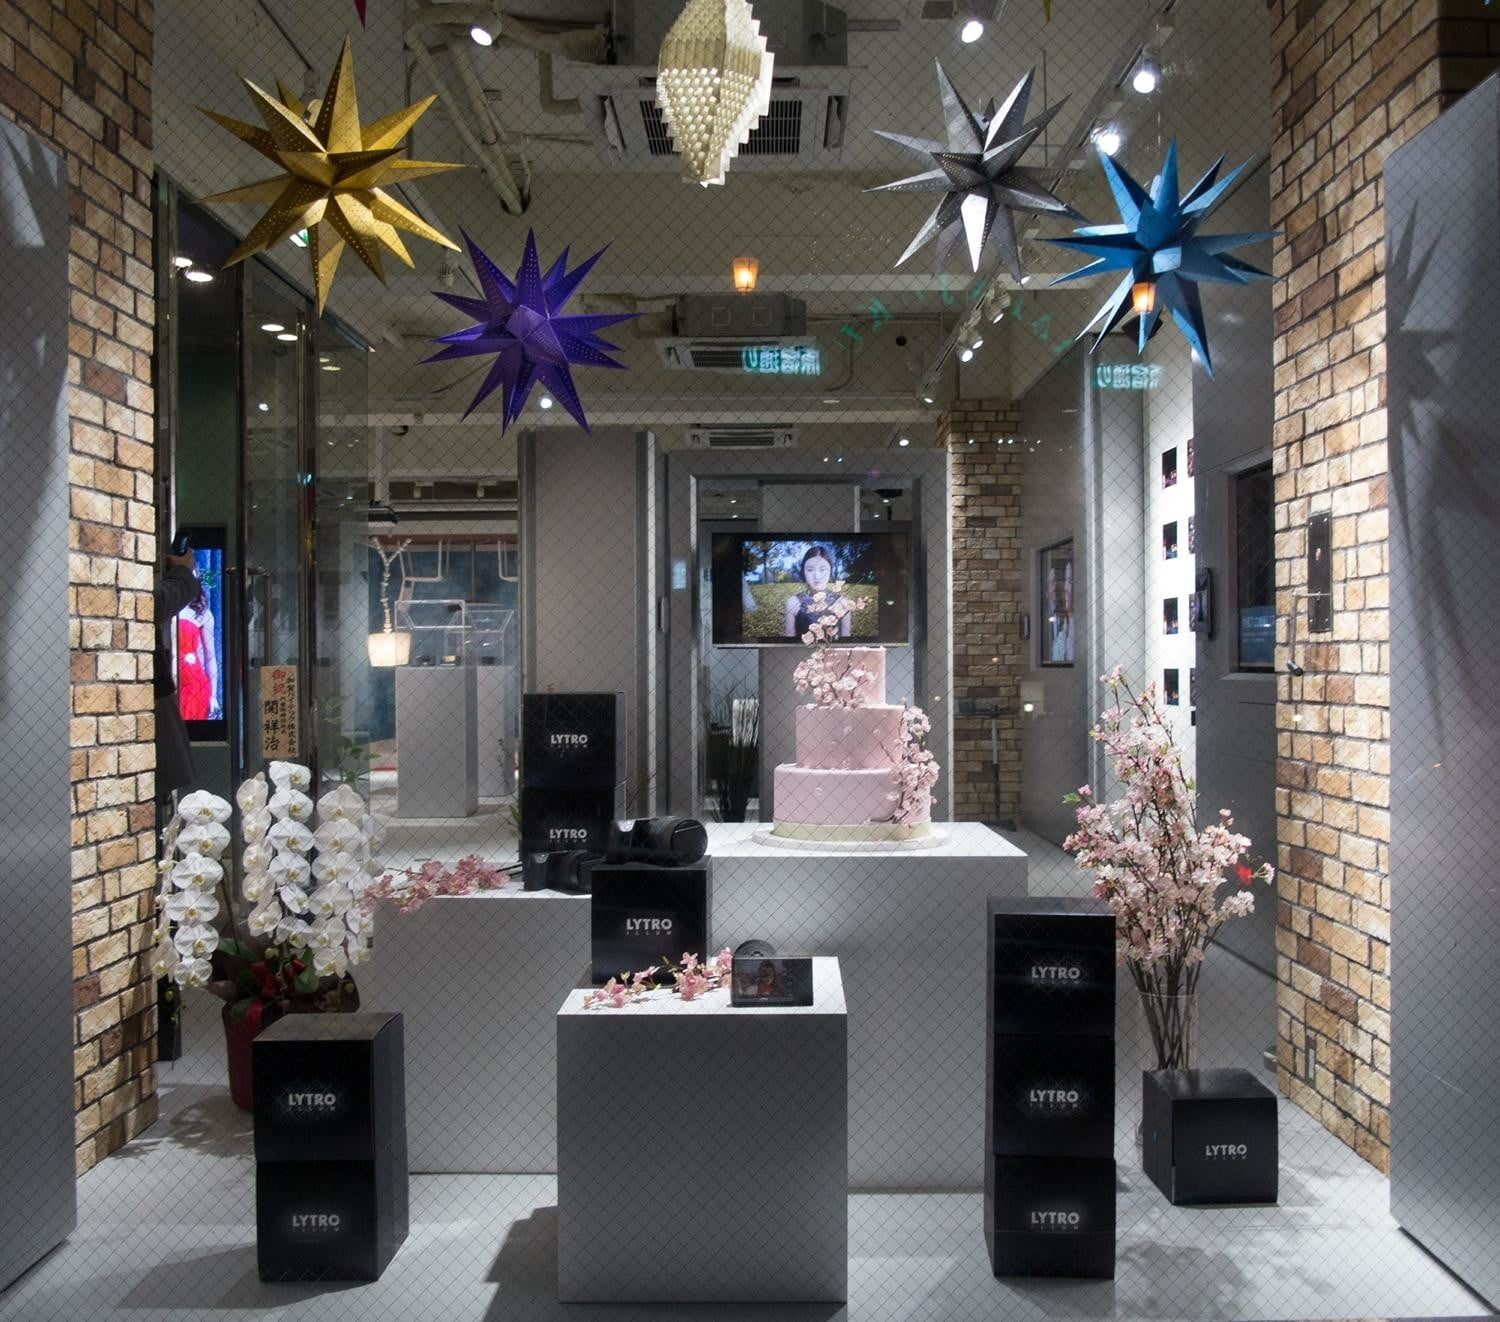 lytro opens tokyo storefront as light field experience center store 2